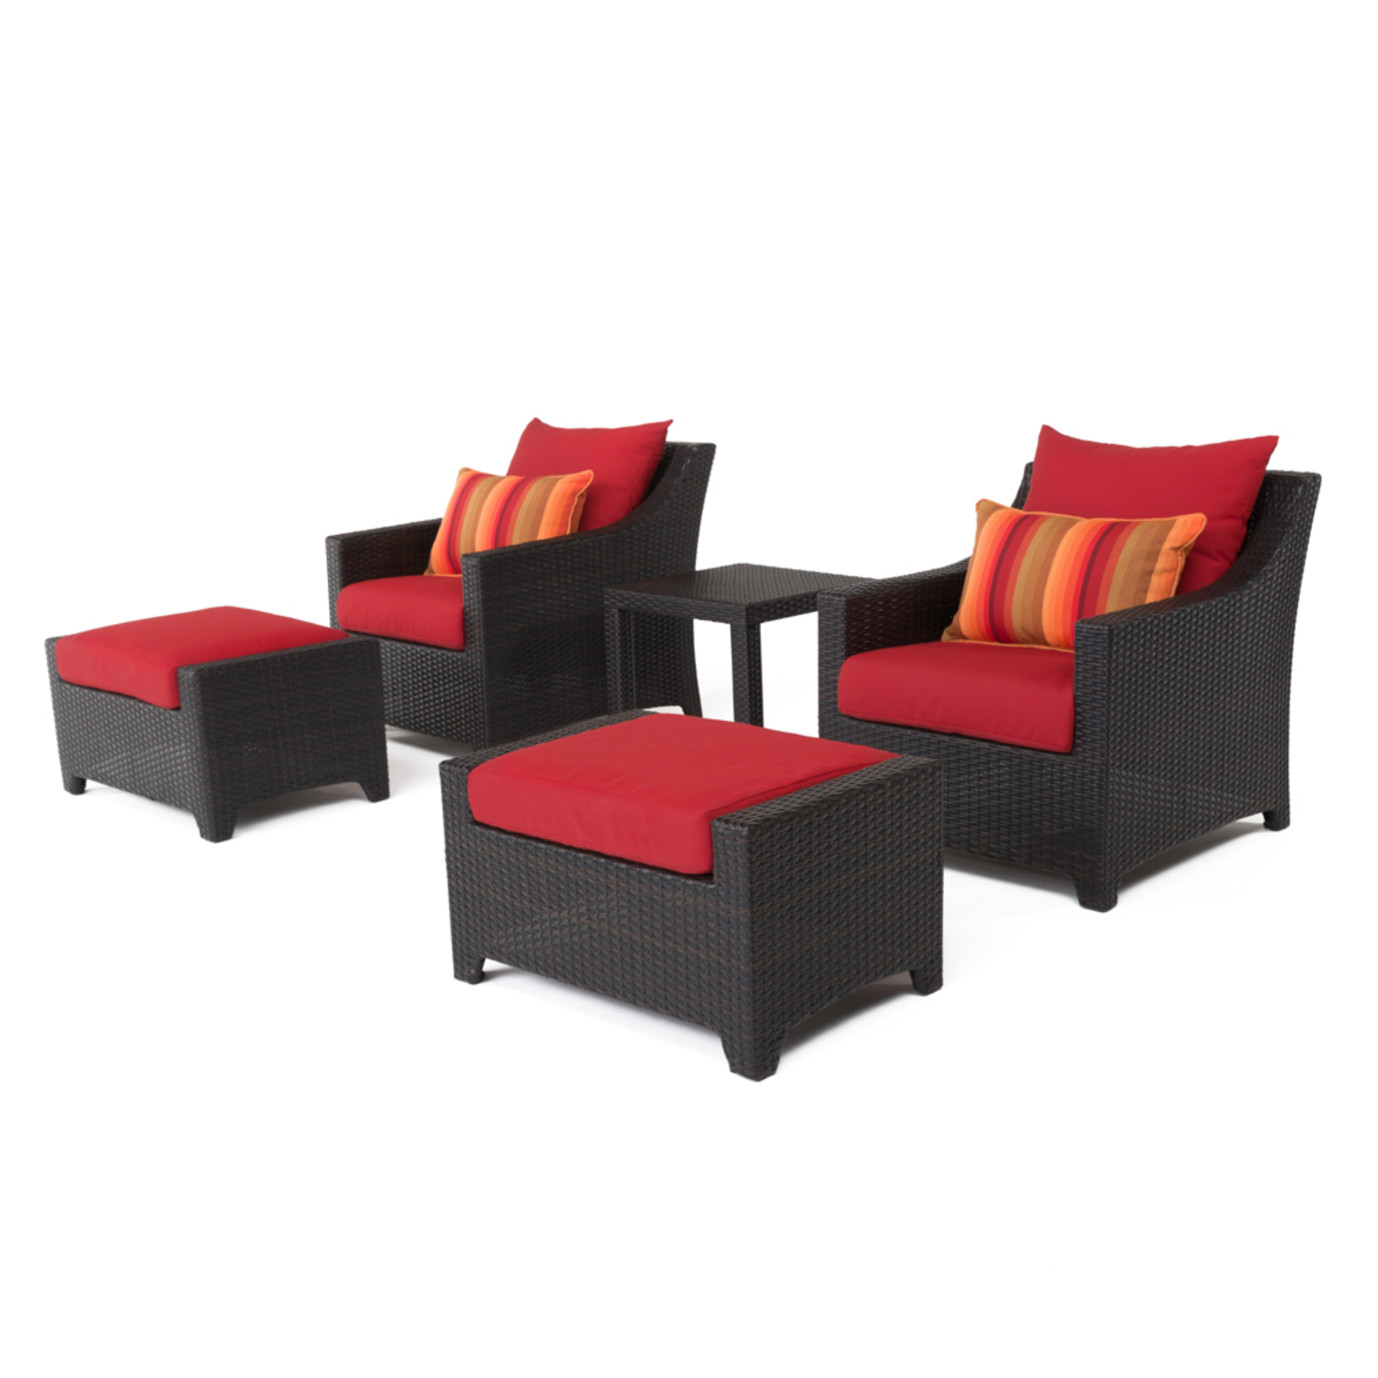 Deco™ 5 Piece Club Chair & Ottoman Set - Sunset Red